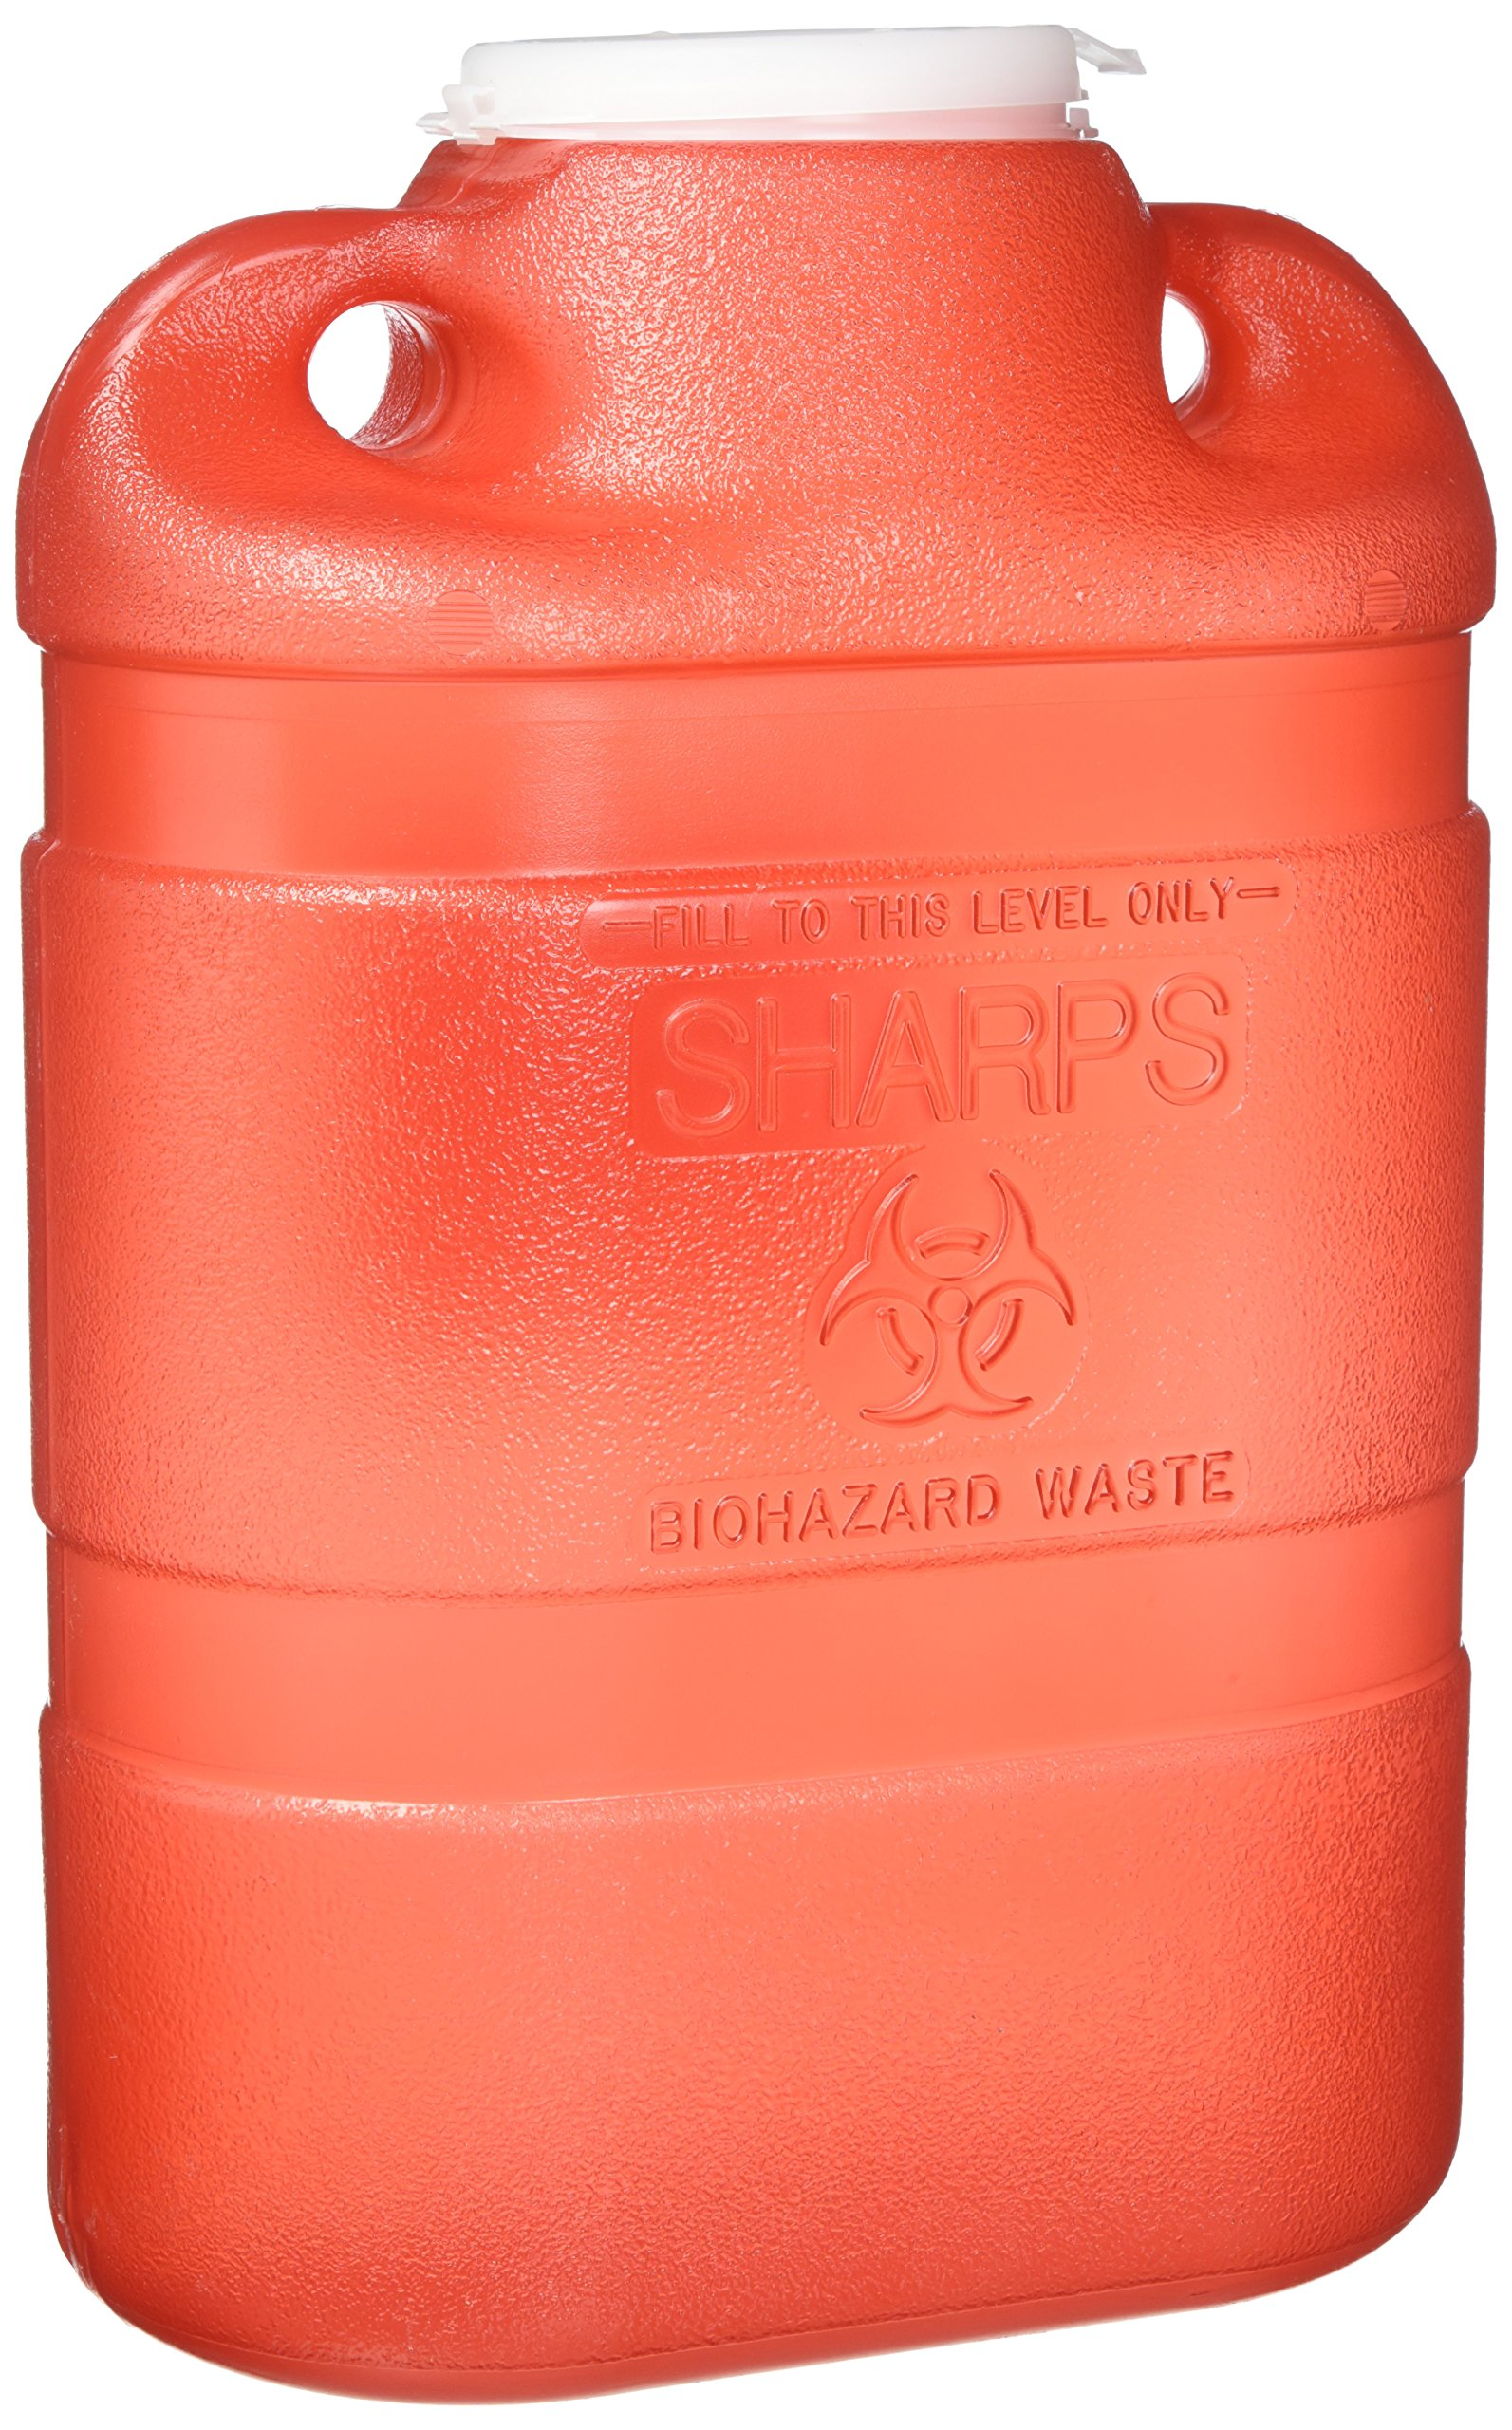 BD Sharps Collector 8.2 qt Large, Red by The Becton-Dickinson Incorporated